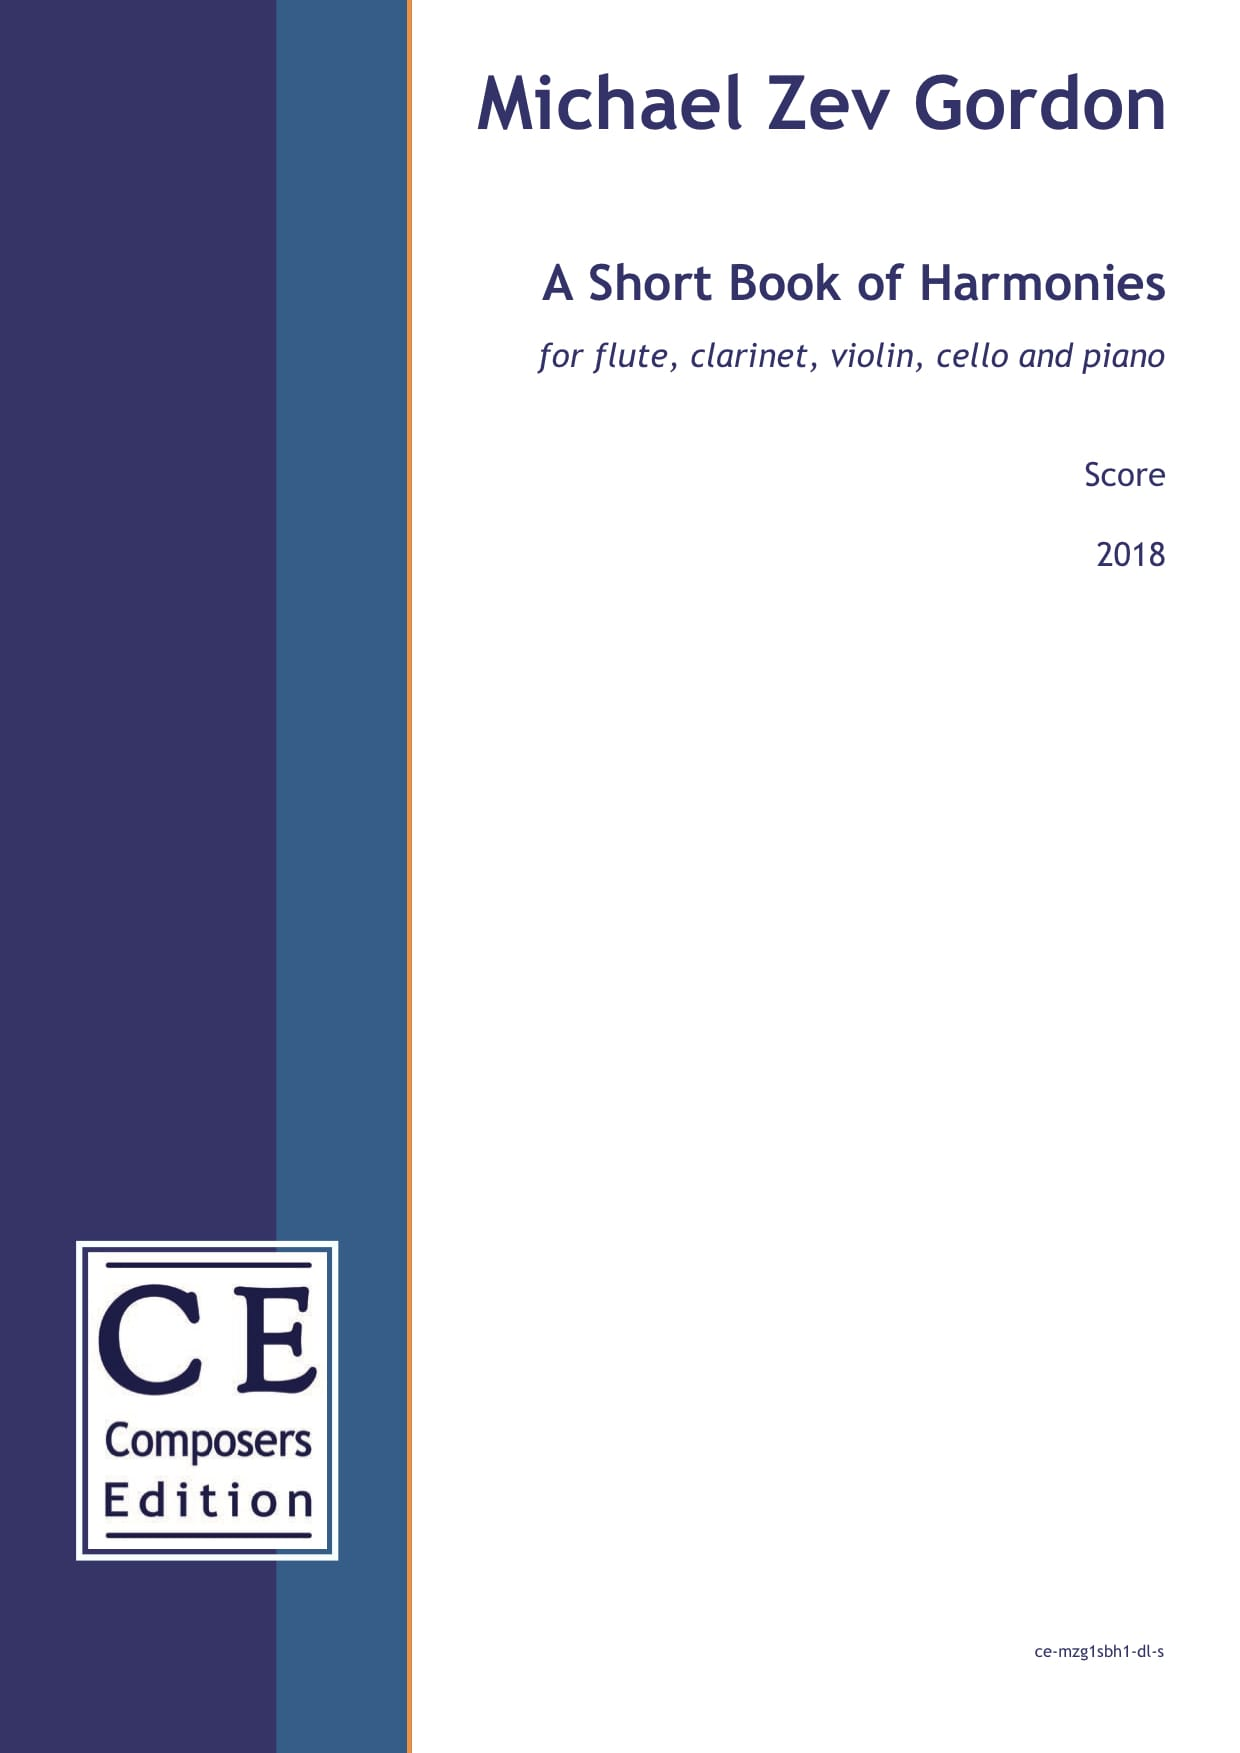 Michael Zev Gordon: A Short Book of Harmonies for flute, clarinet, violin, cello and piano